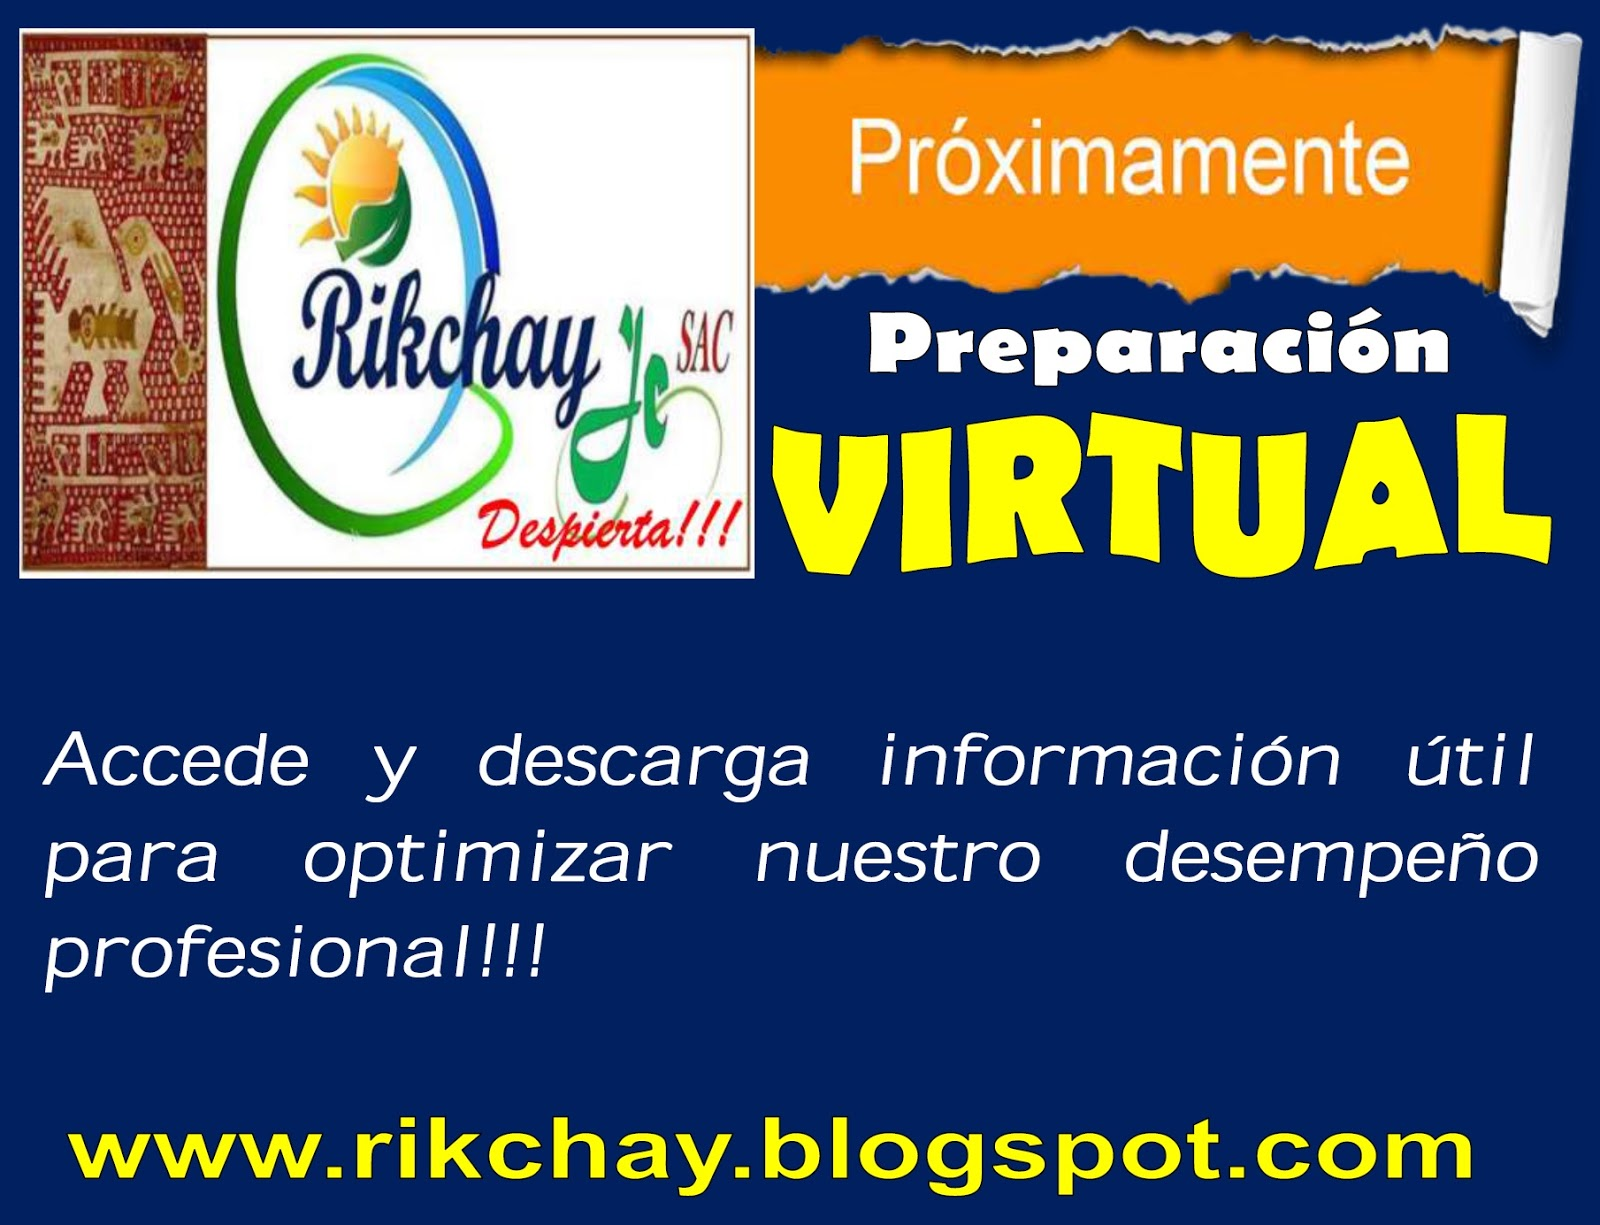 Organizaci n educativa rikchay jc descarga plazas de for Vacantes de docentes 2016